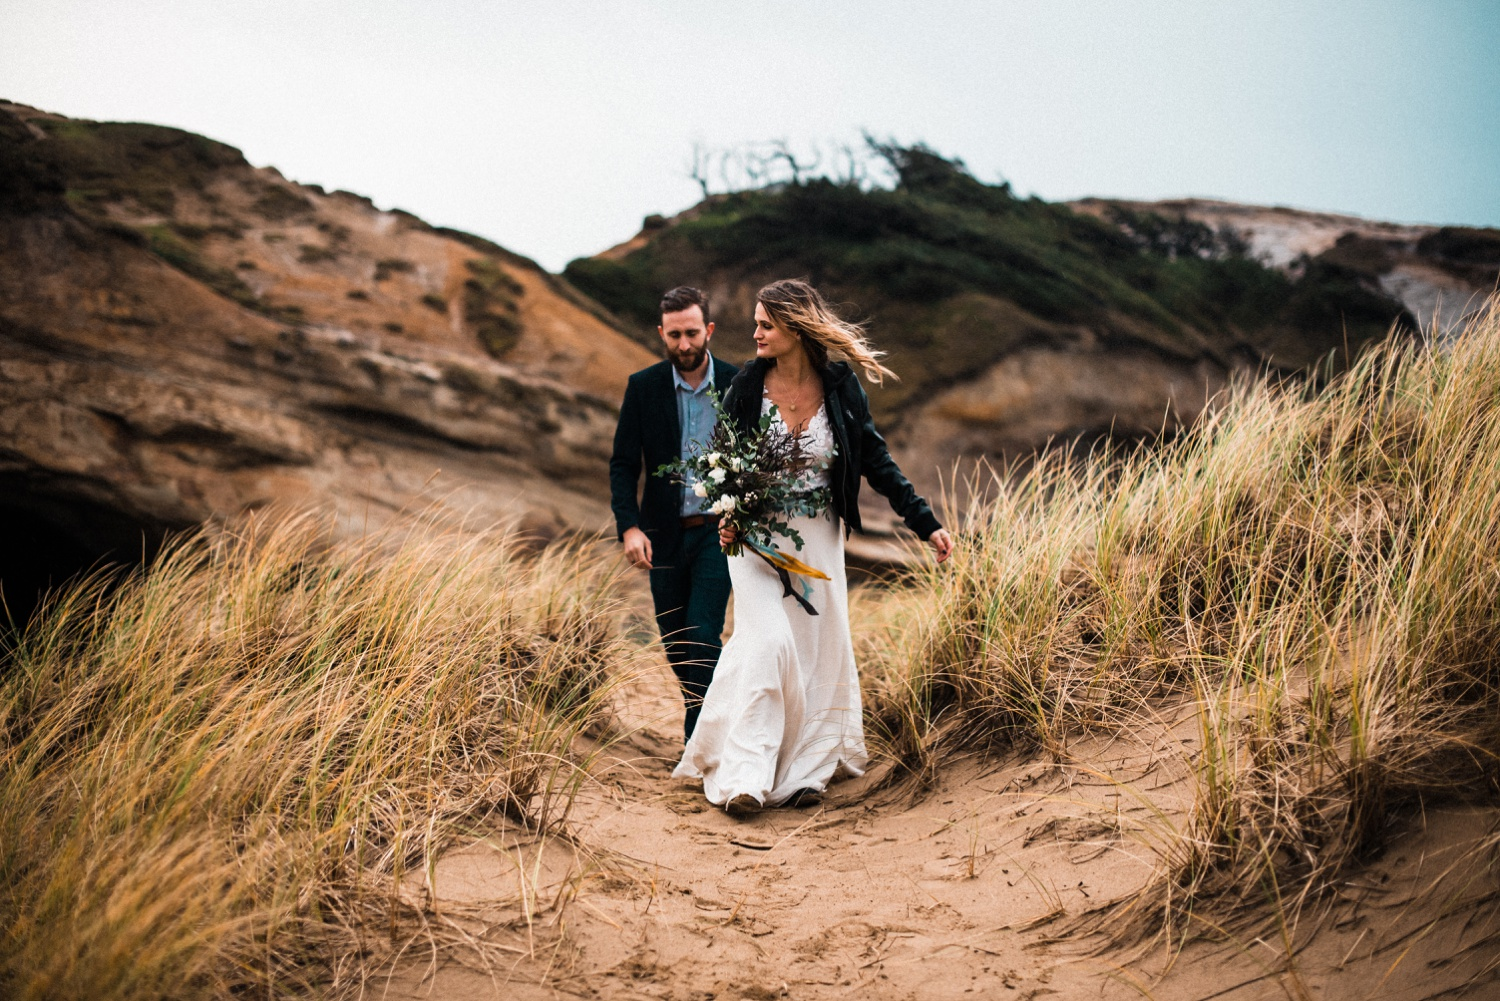 Oregon_Coast_Elopement_Wedding_The_Foxes_Photography_129-2.jpg